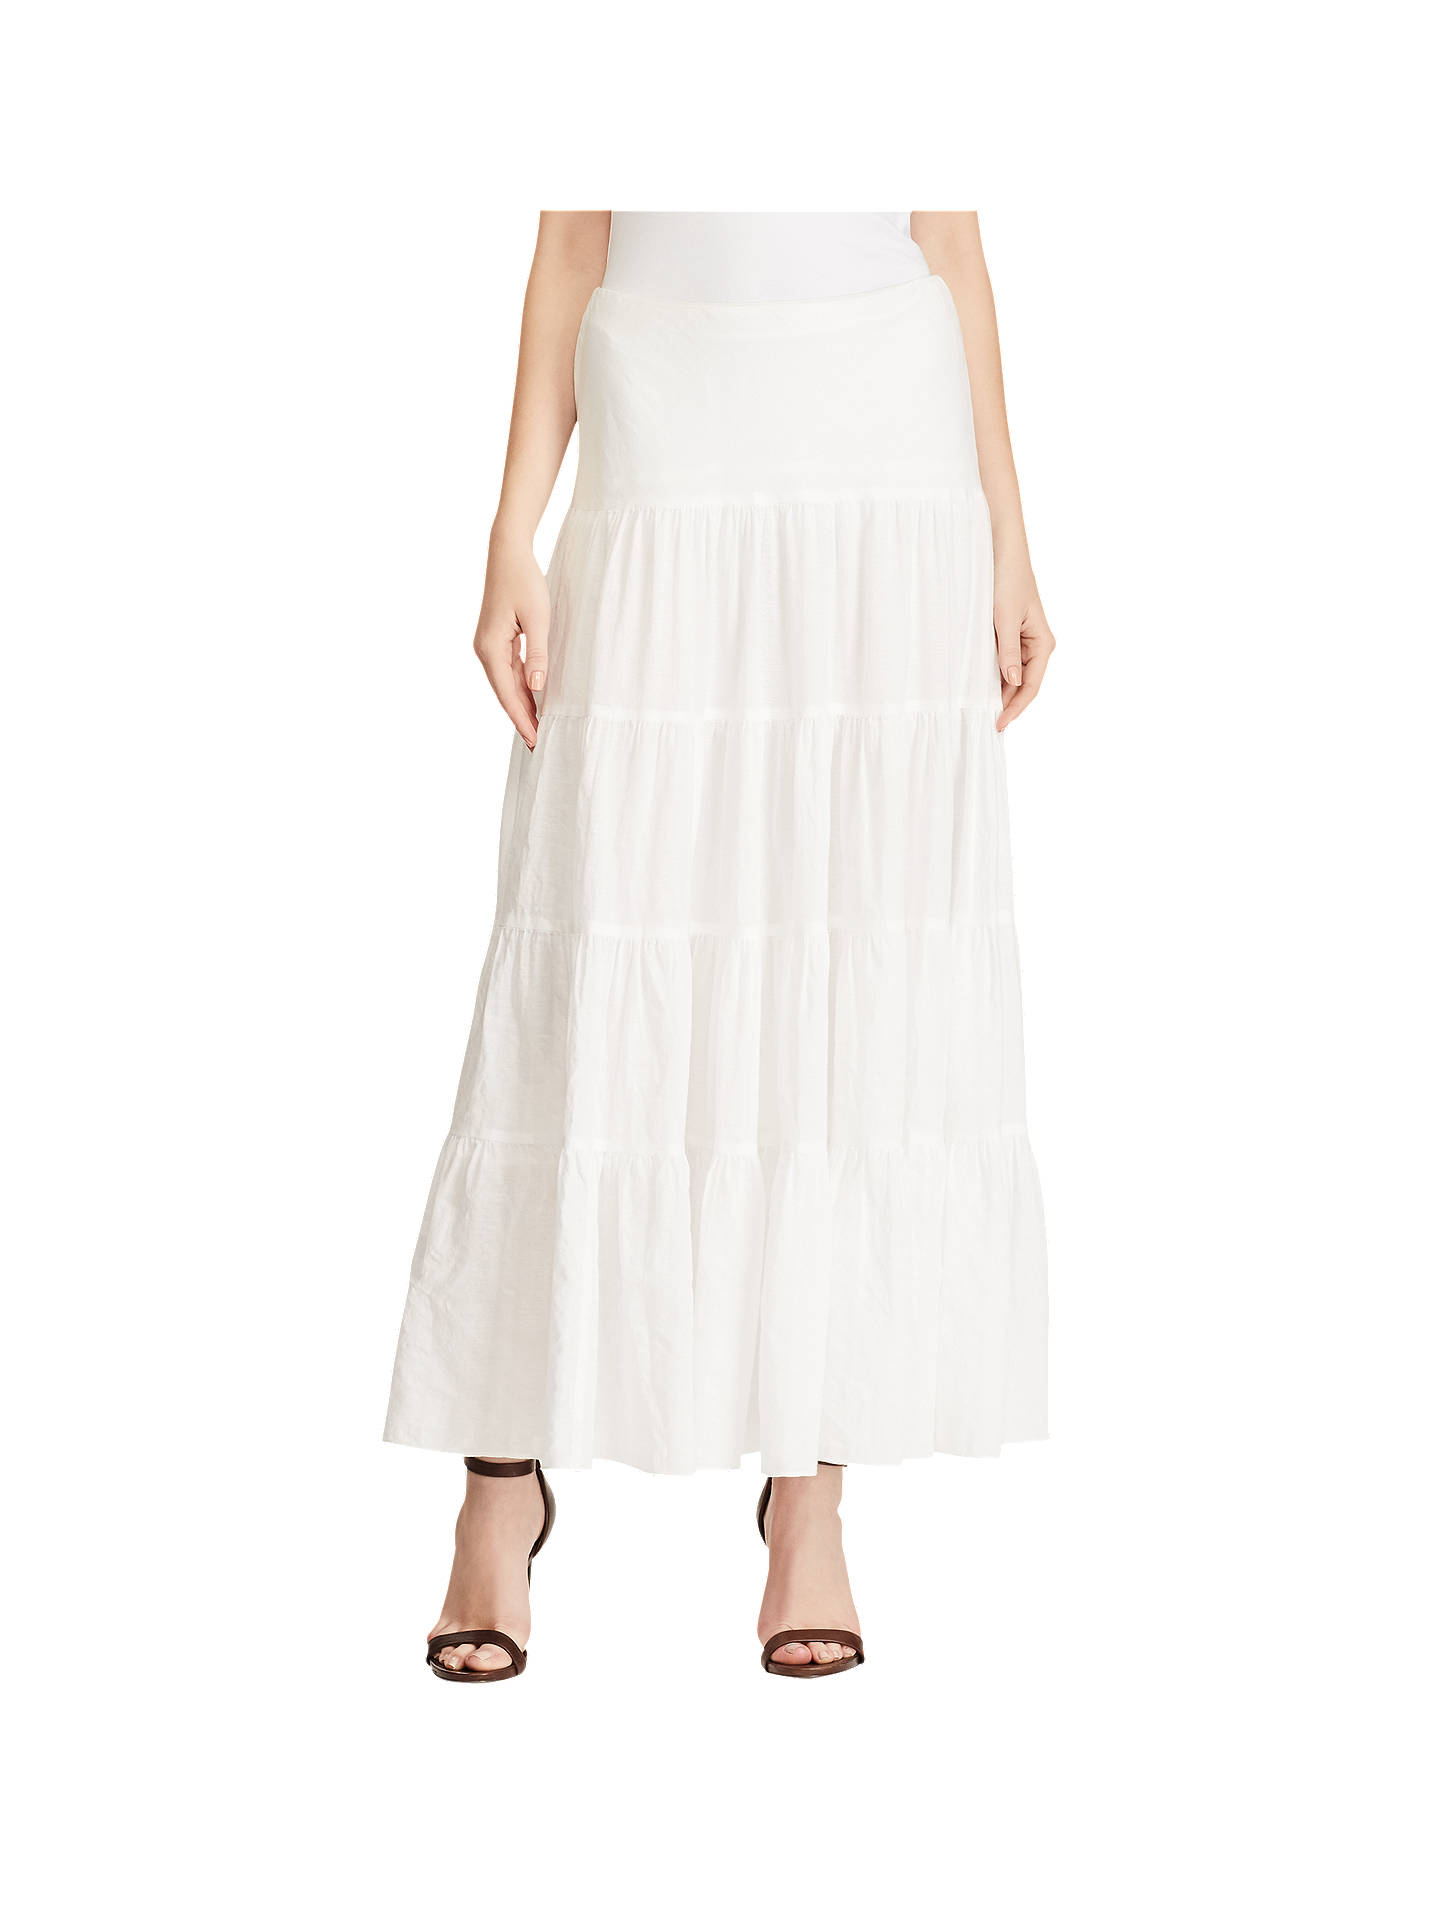 6499ff8480 Buy Lauren Ralph Lauren Cotton Gauze Maxi Skirt, White, XS Online at  johnlewis.